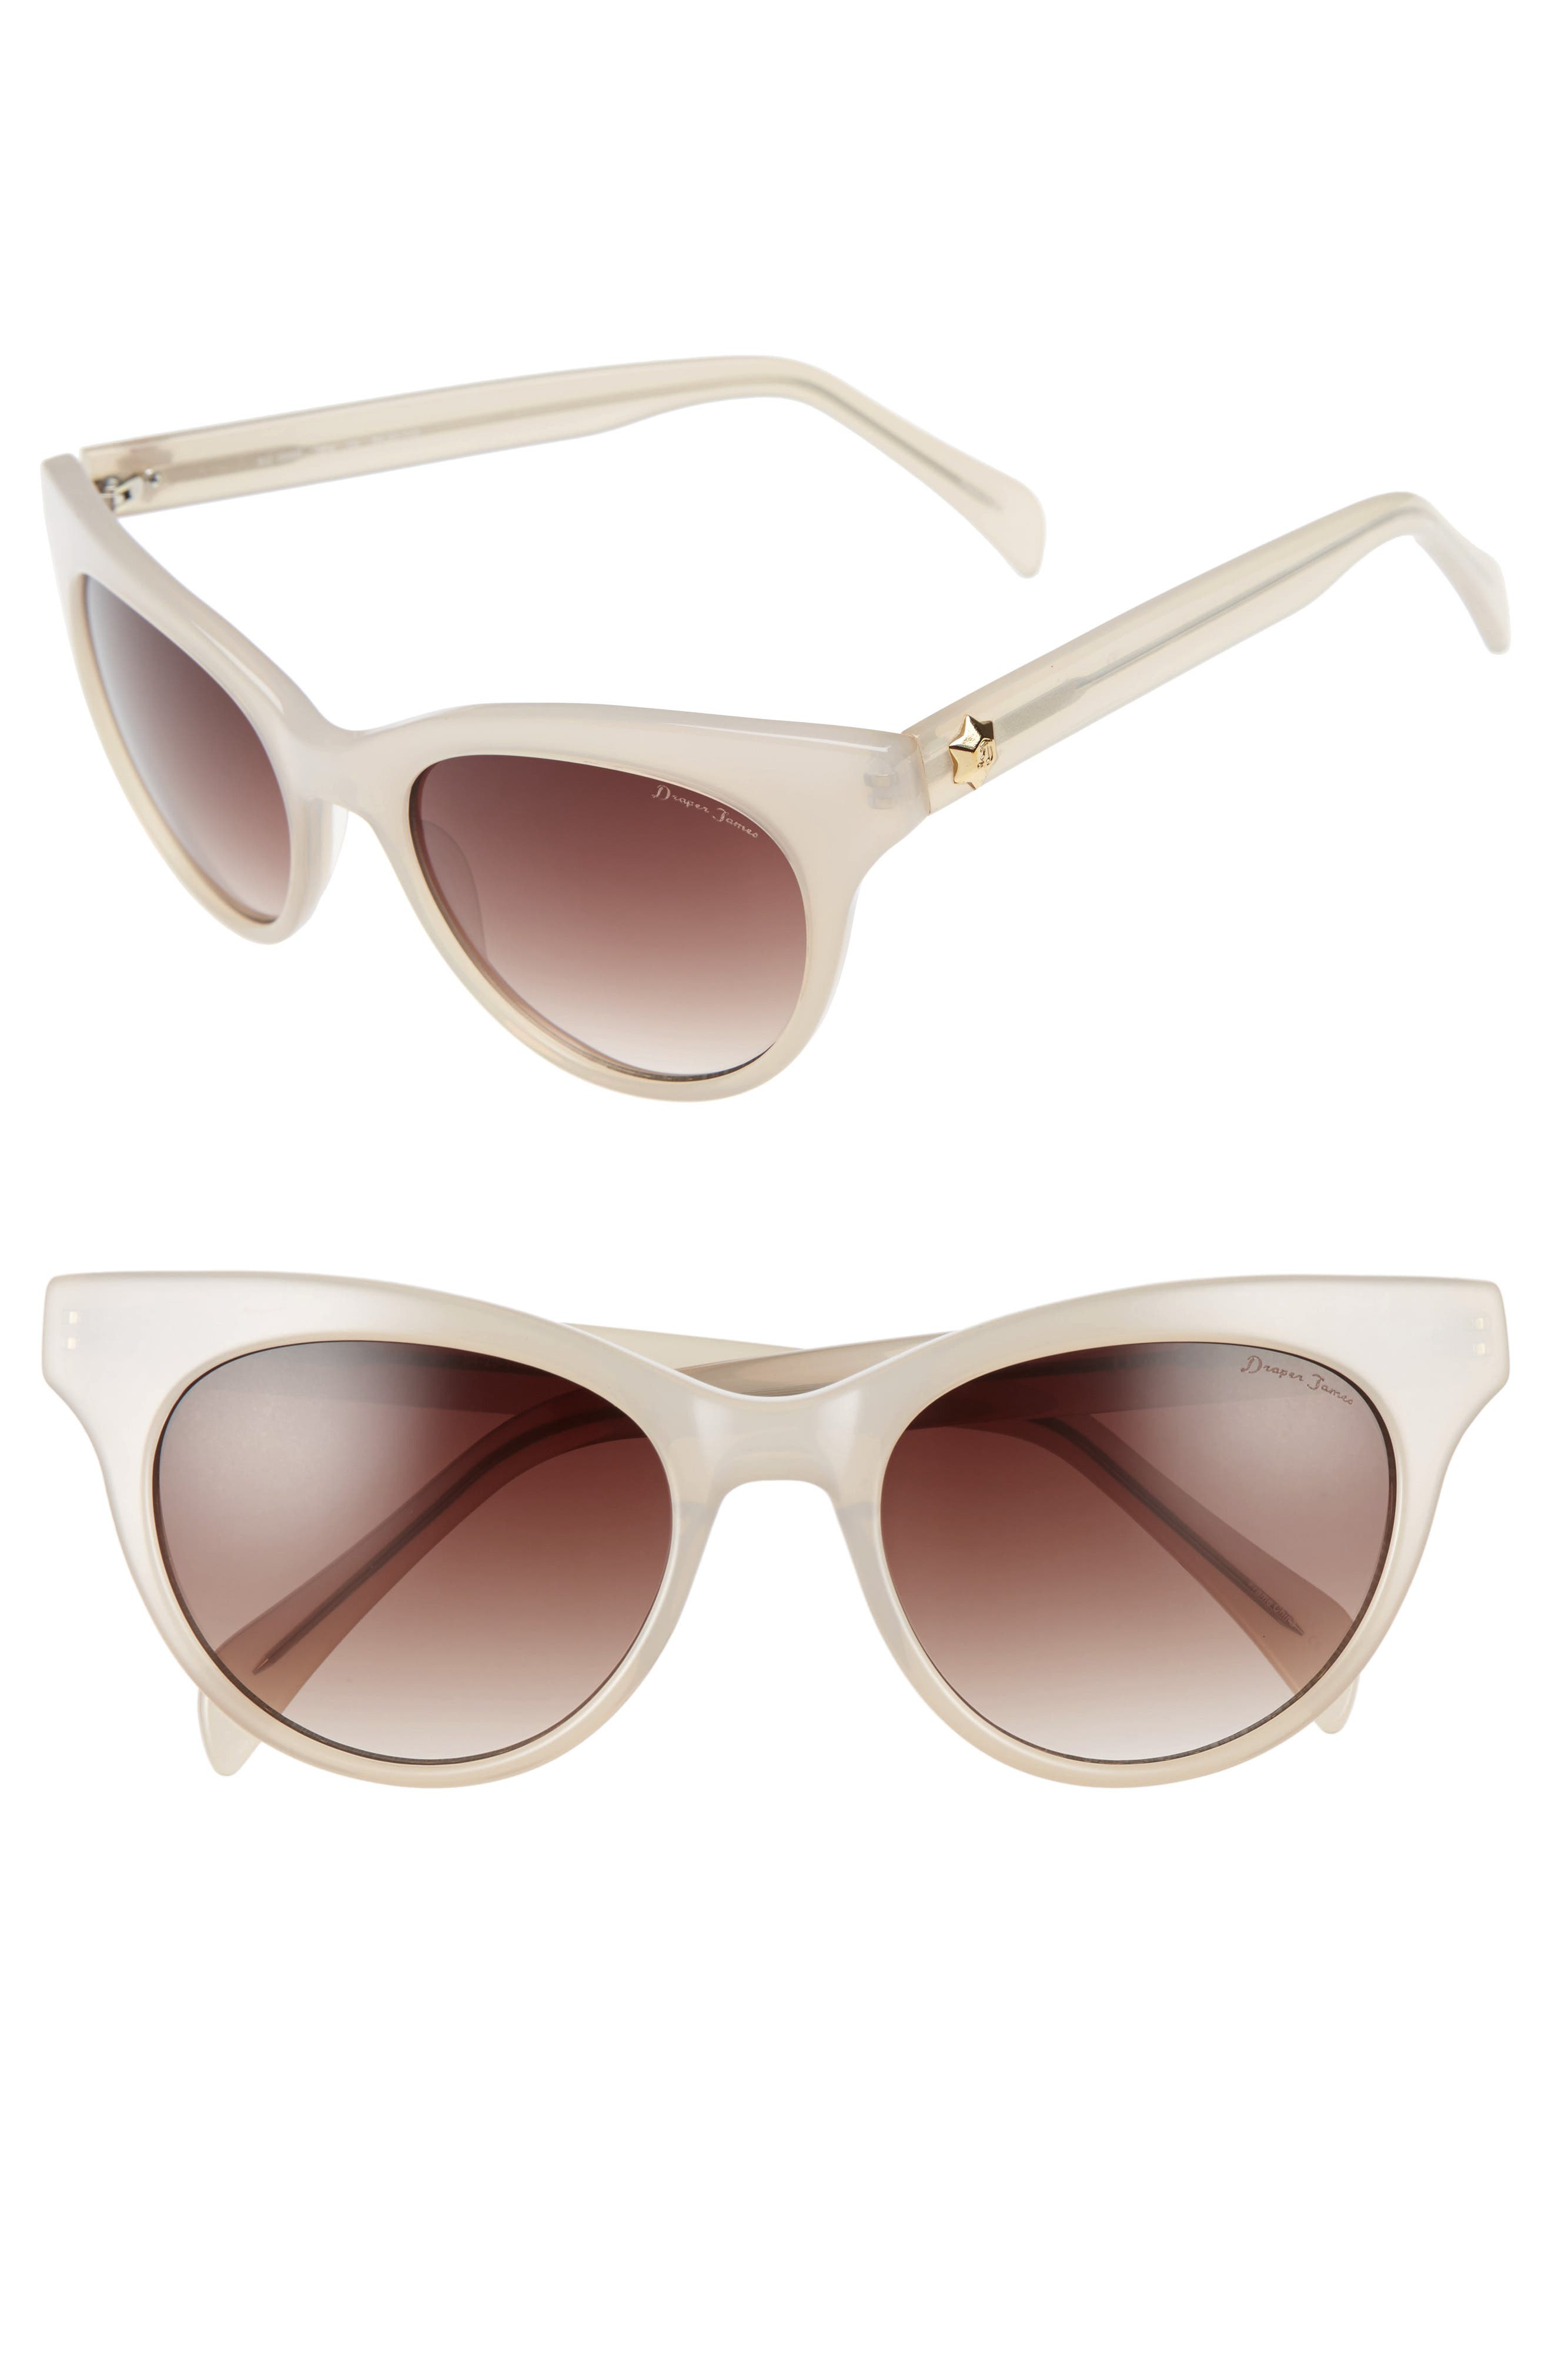 Main Image - Draper James 54mm Gradient Lens Cat Eye Sunglasses